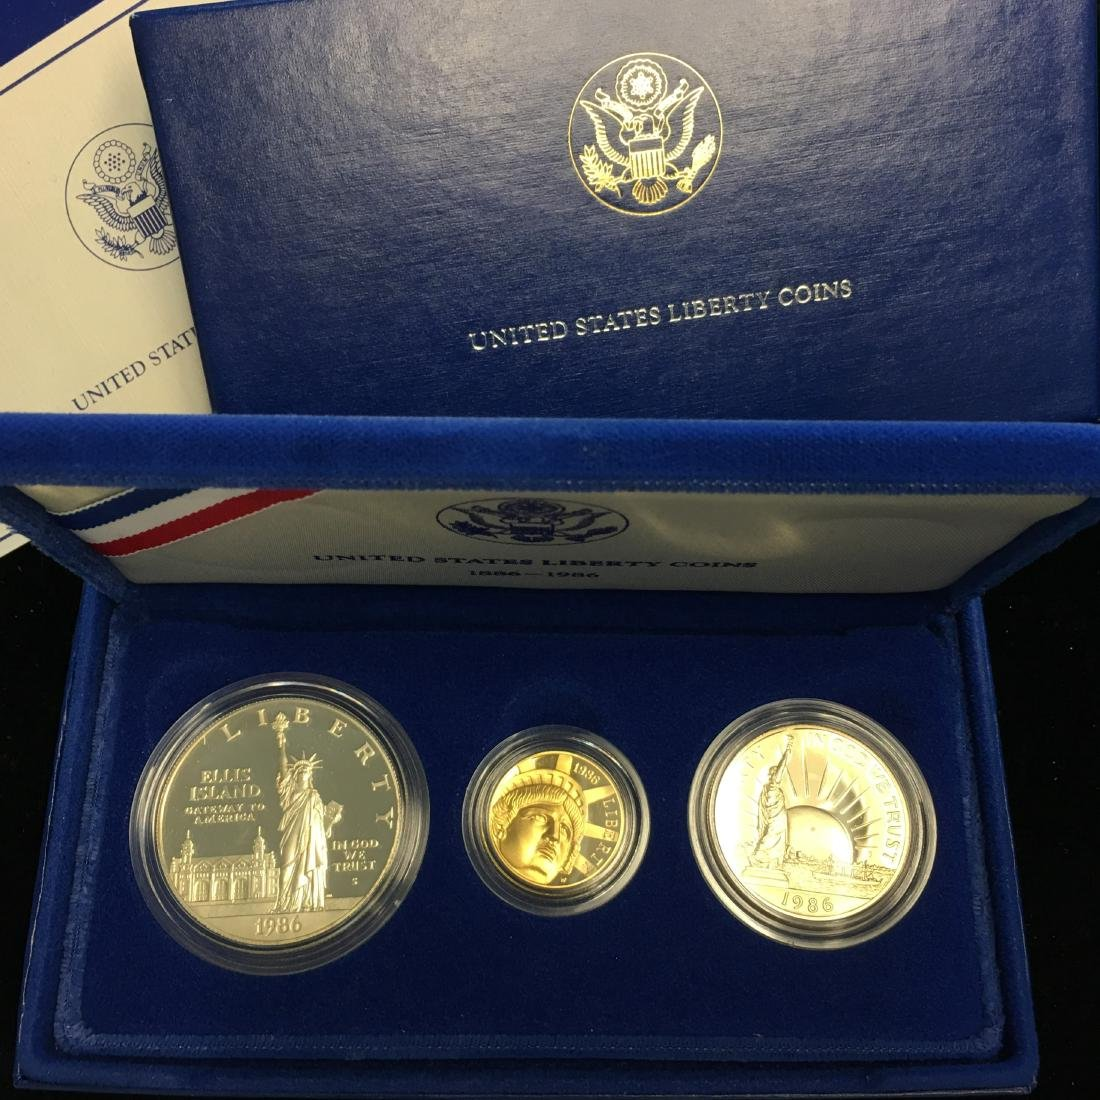 1986 U.S. Statue of Liberty 3 Coin Proof Set 1886-1986 - 2